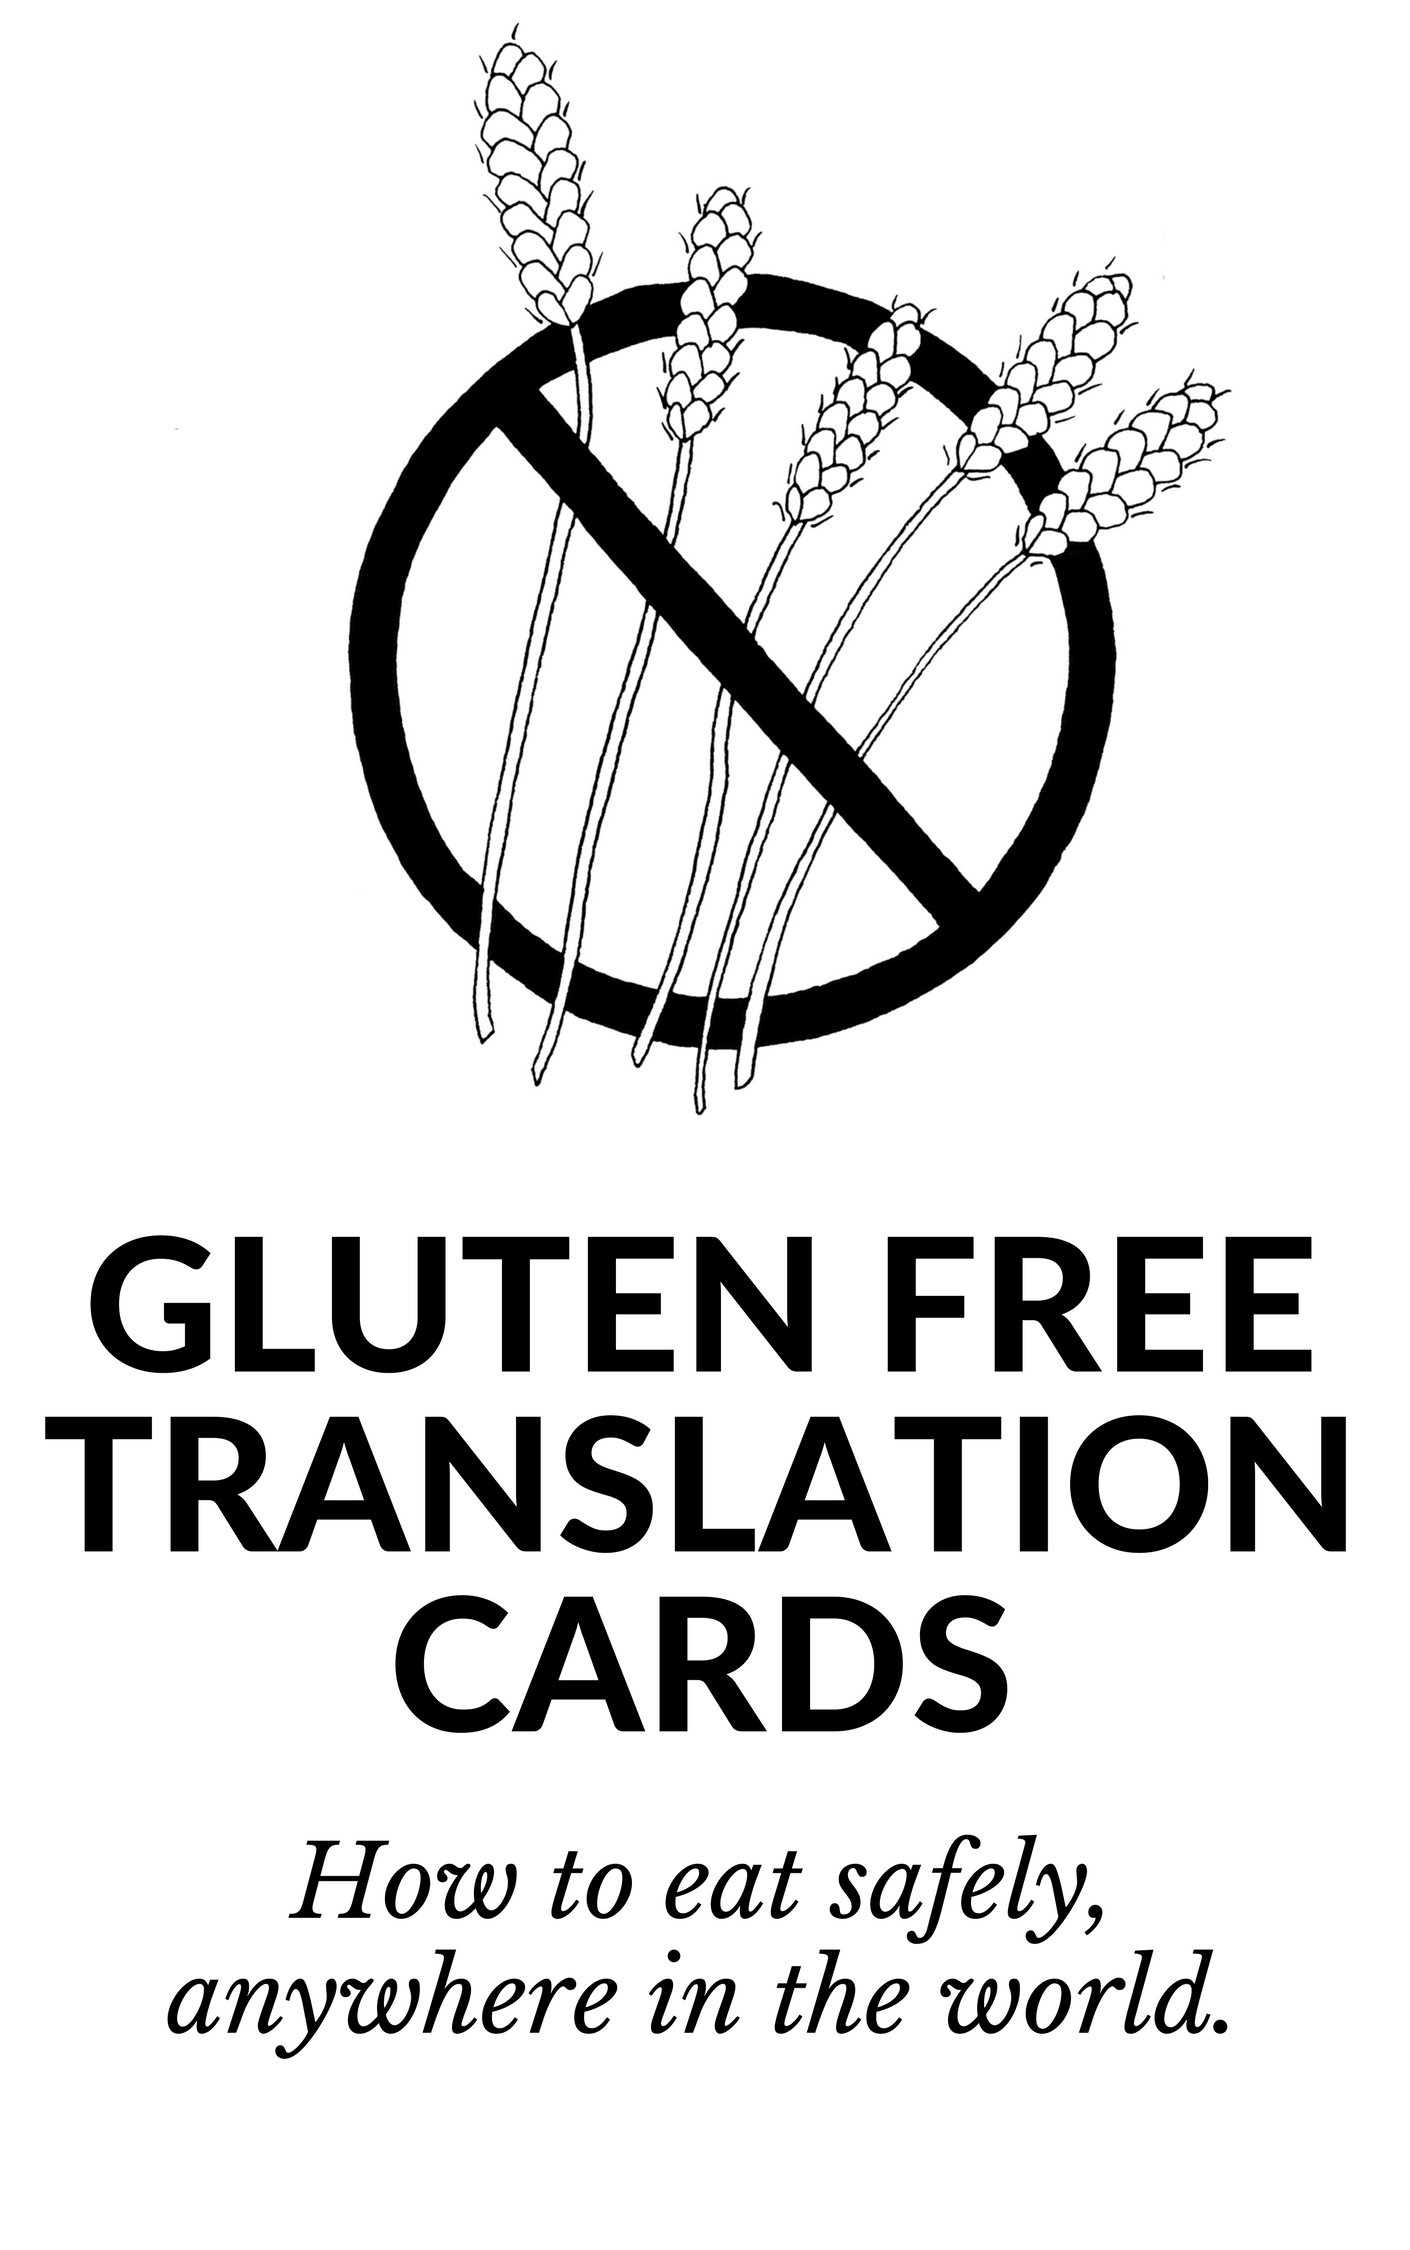 Gluten Free Restaurant Cards: Eat Safely As a Celiac